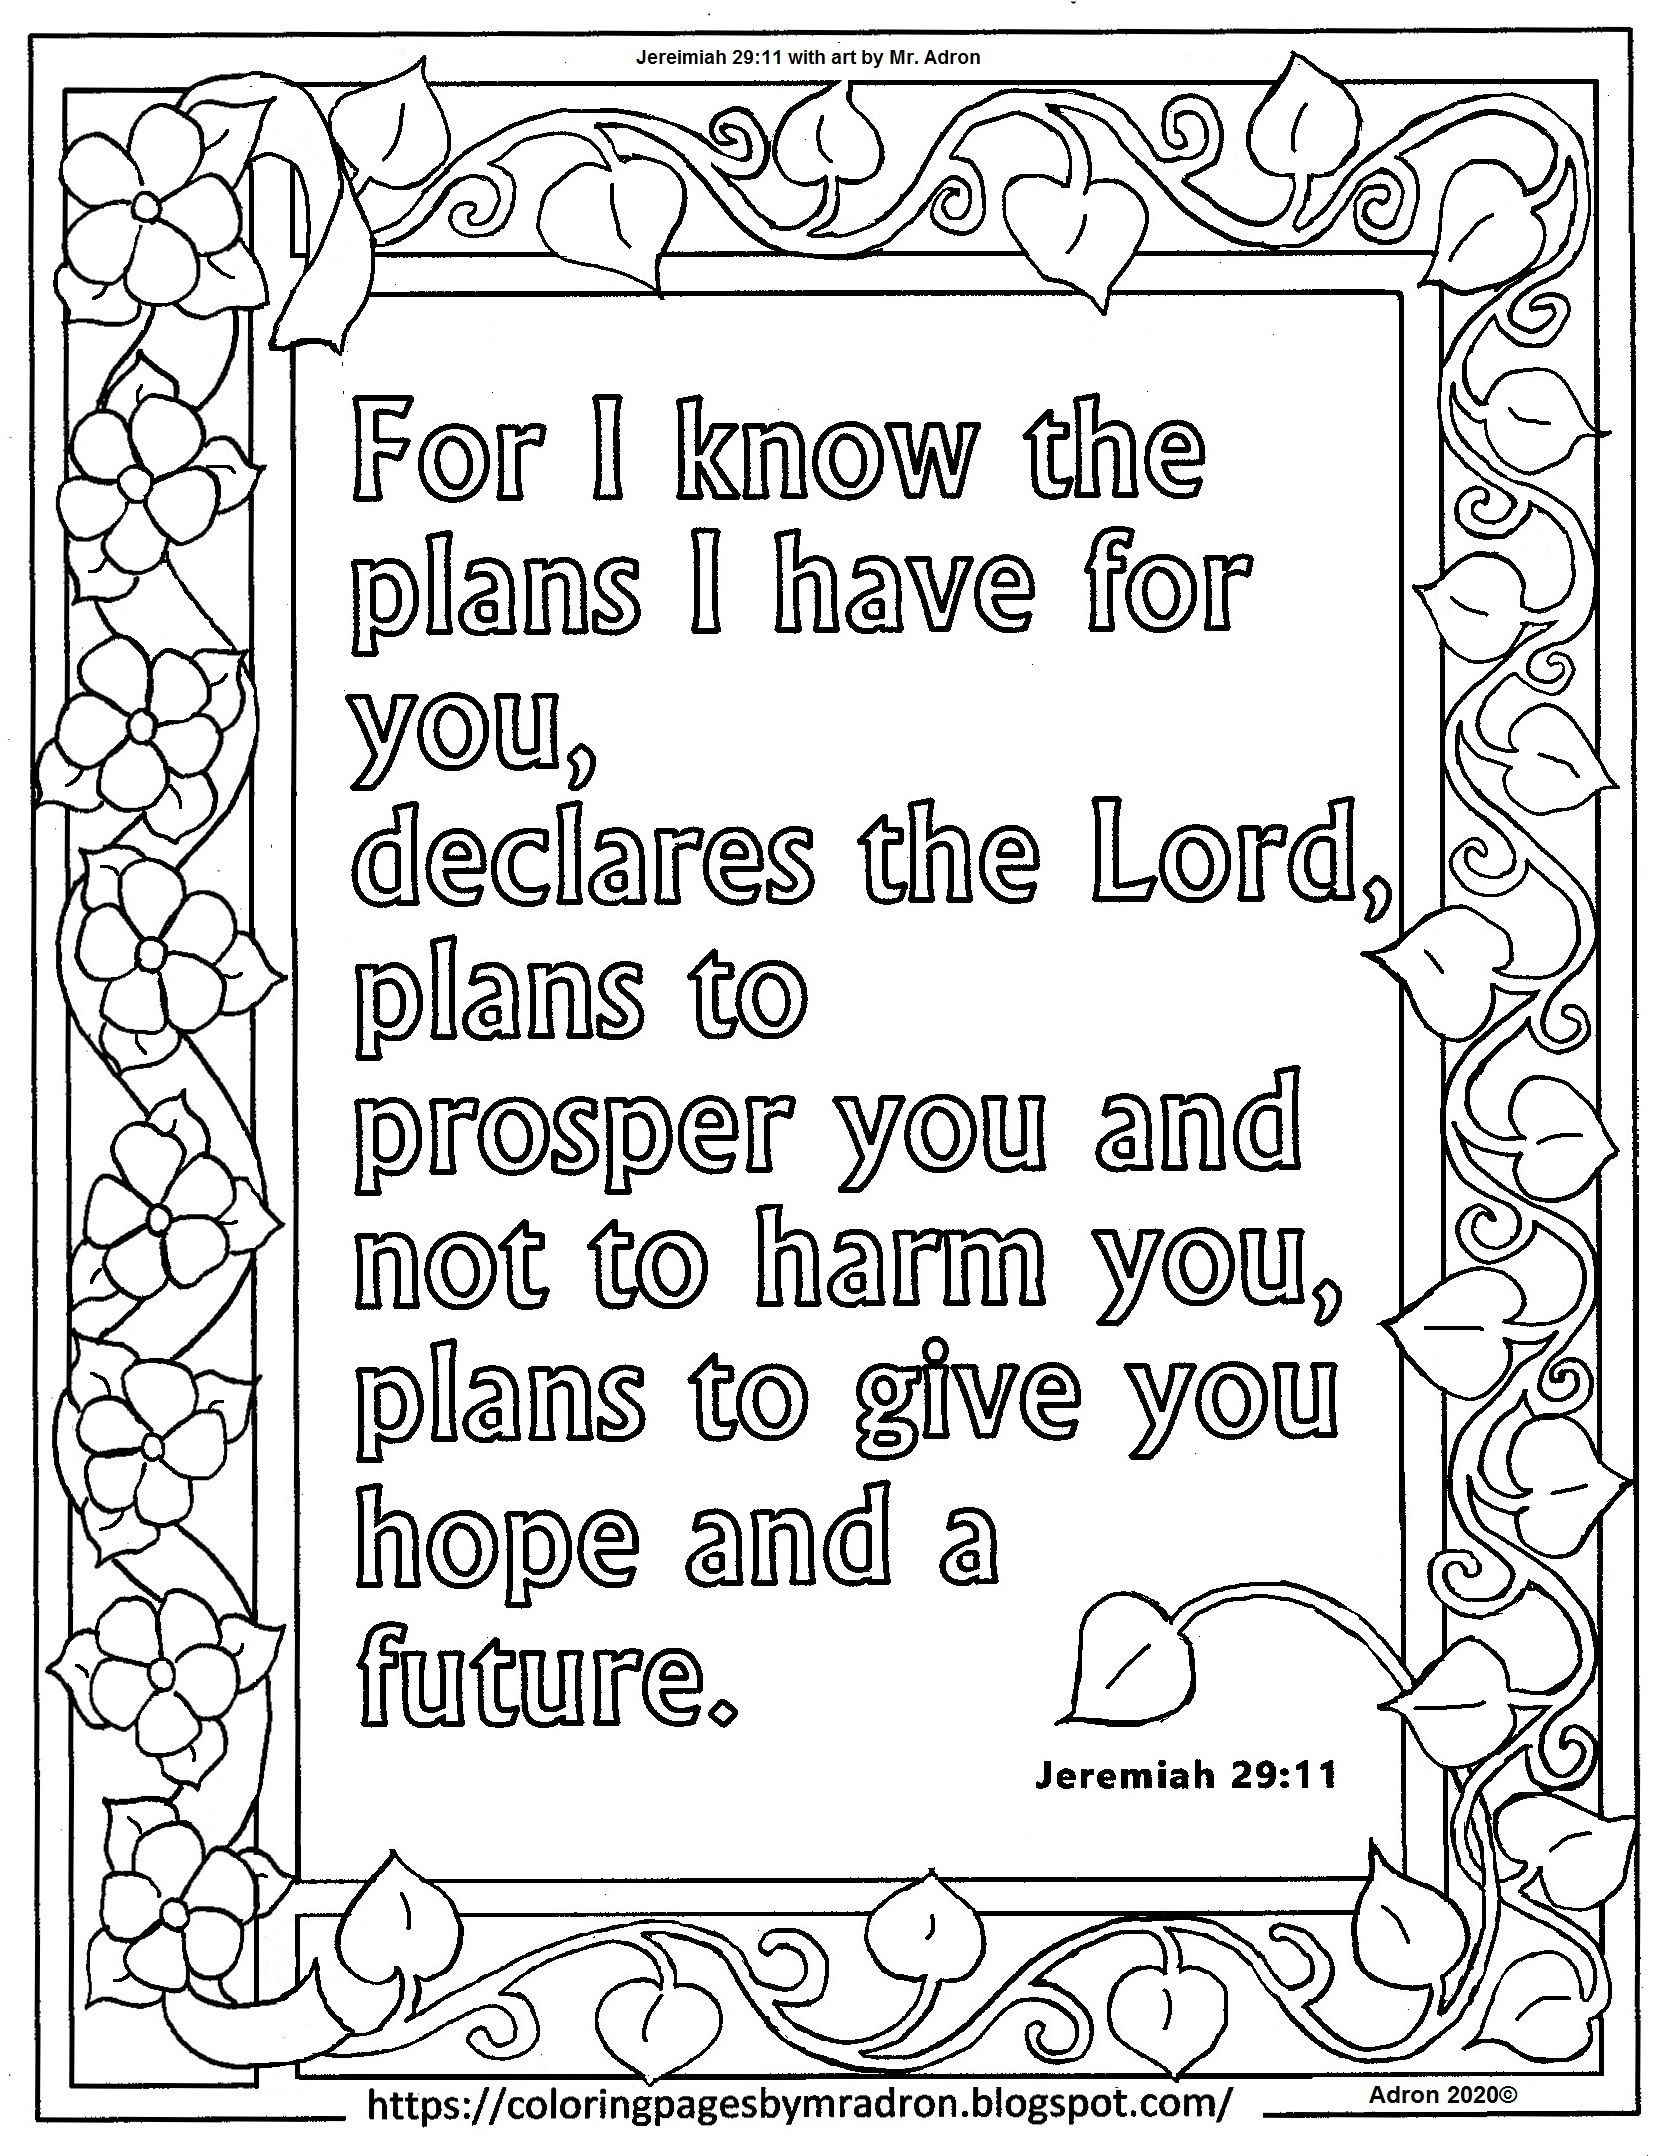 Free Jeremiah 29 11 Print And Color Page Bible Verse Coloring Page Free Printable Coloring Pages Free Prints